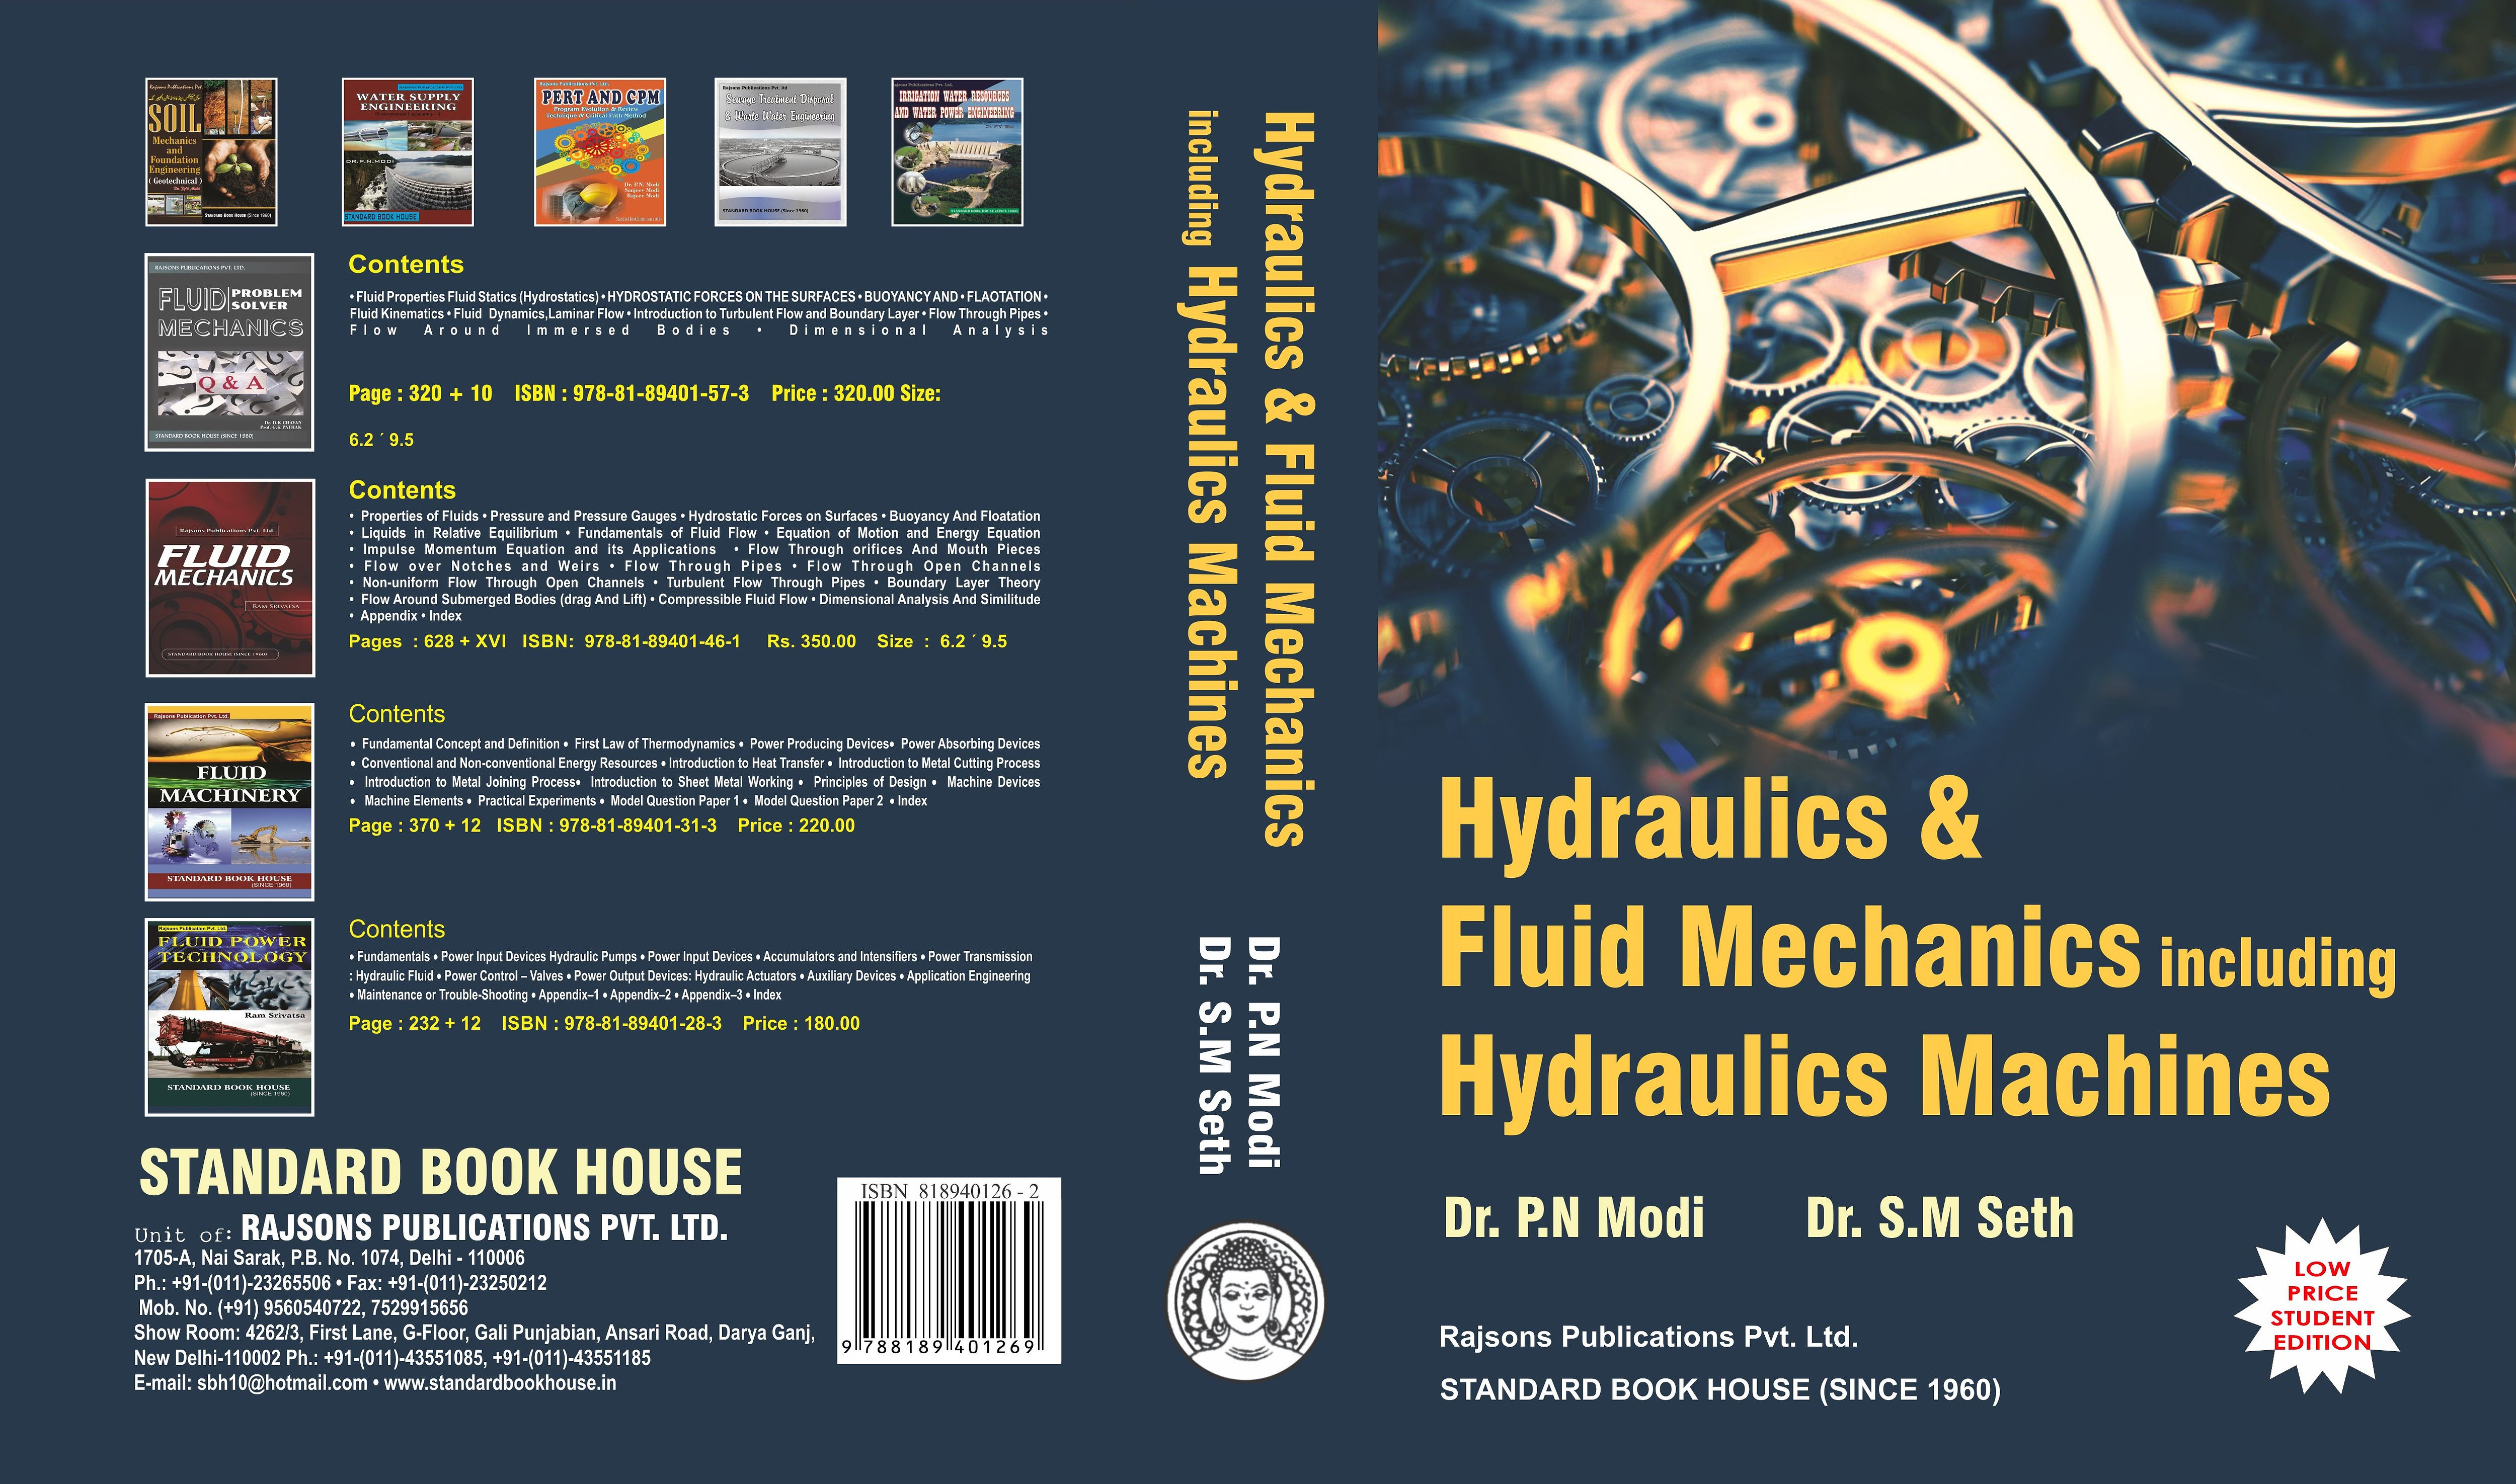 Hydraulics and Fluid Mechanics Including Hydraulics Machines | STANDARD  BOOK HOUSE